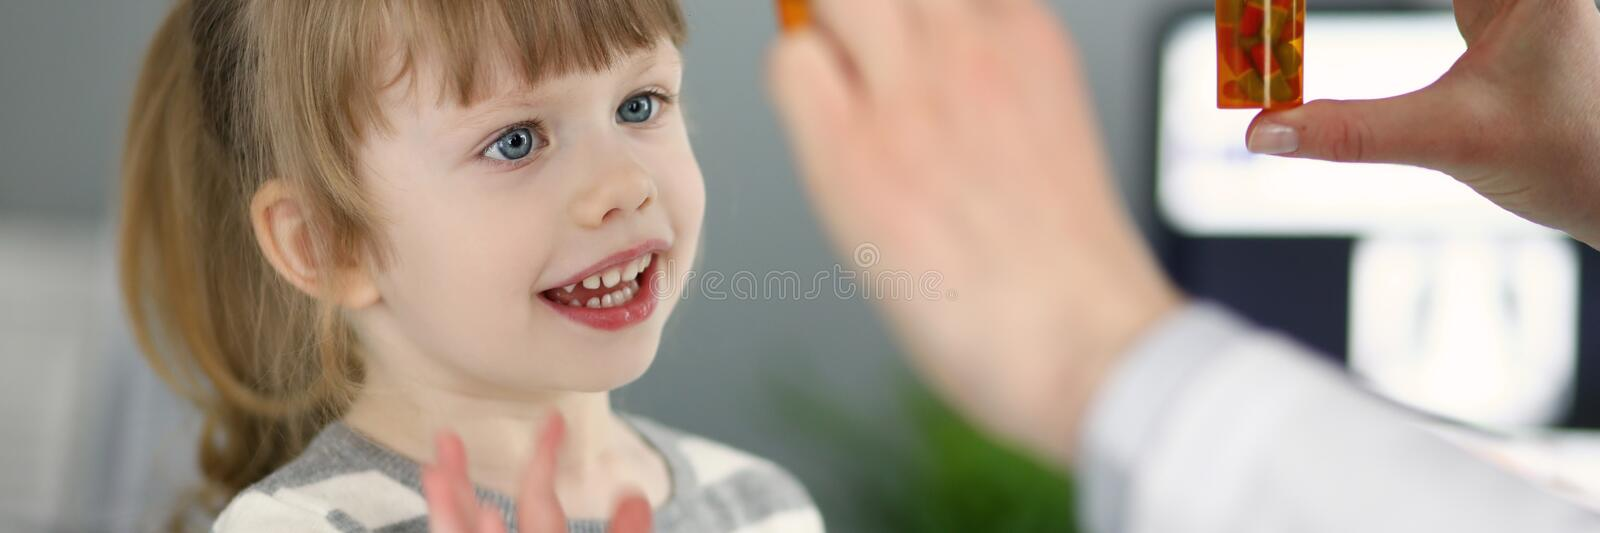 Cute little patient girl having fun selecting a bottle of medications royalty free stock image